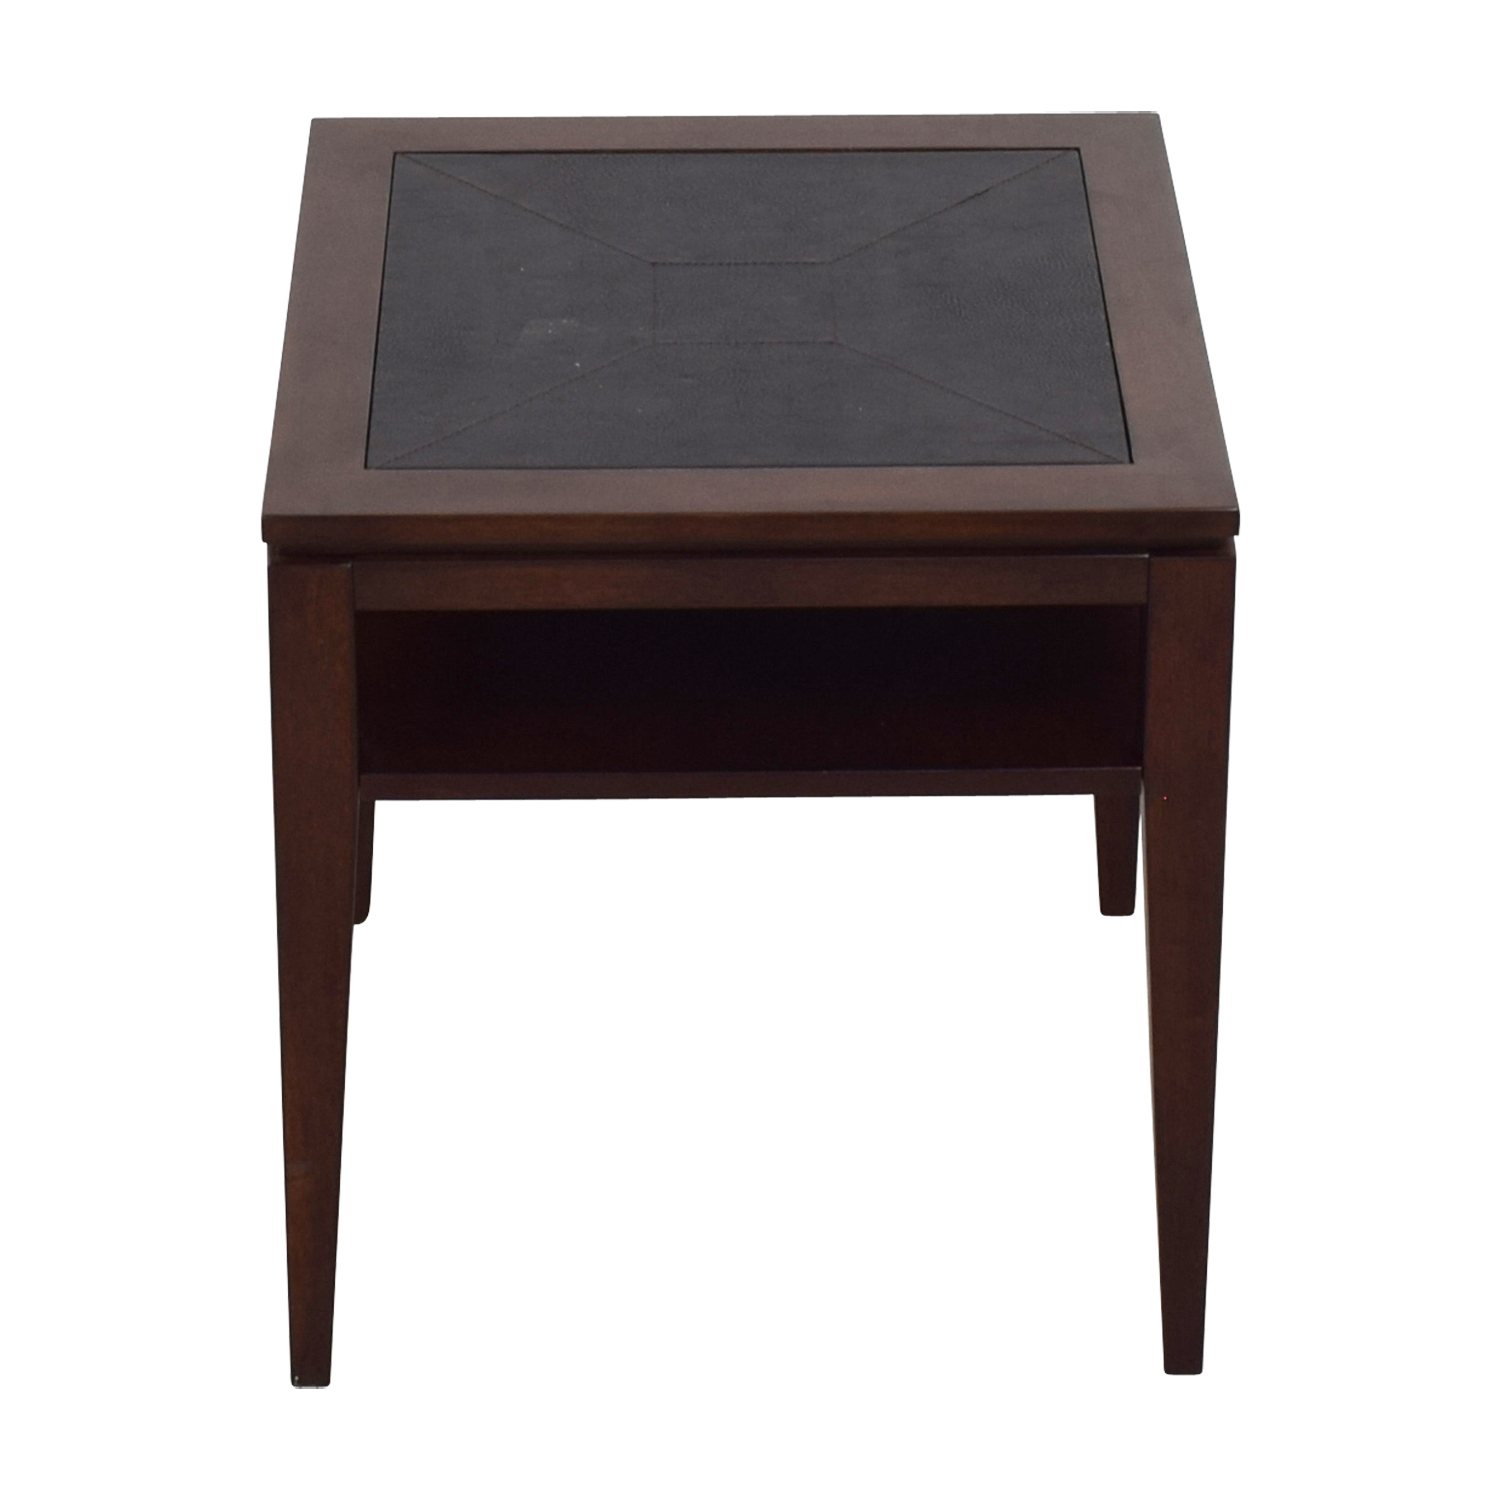 buy Raymour & Flanigan Raymour & Flanigan End Table online